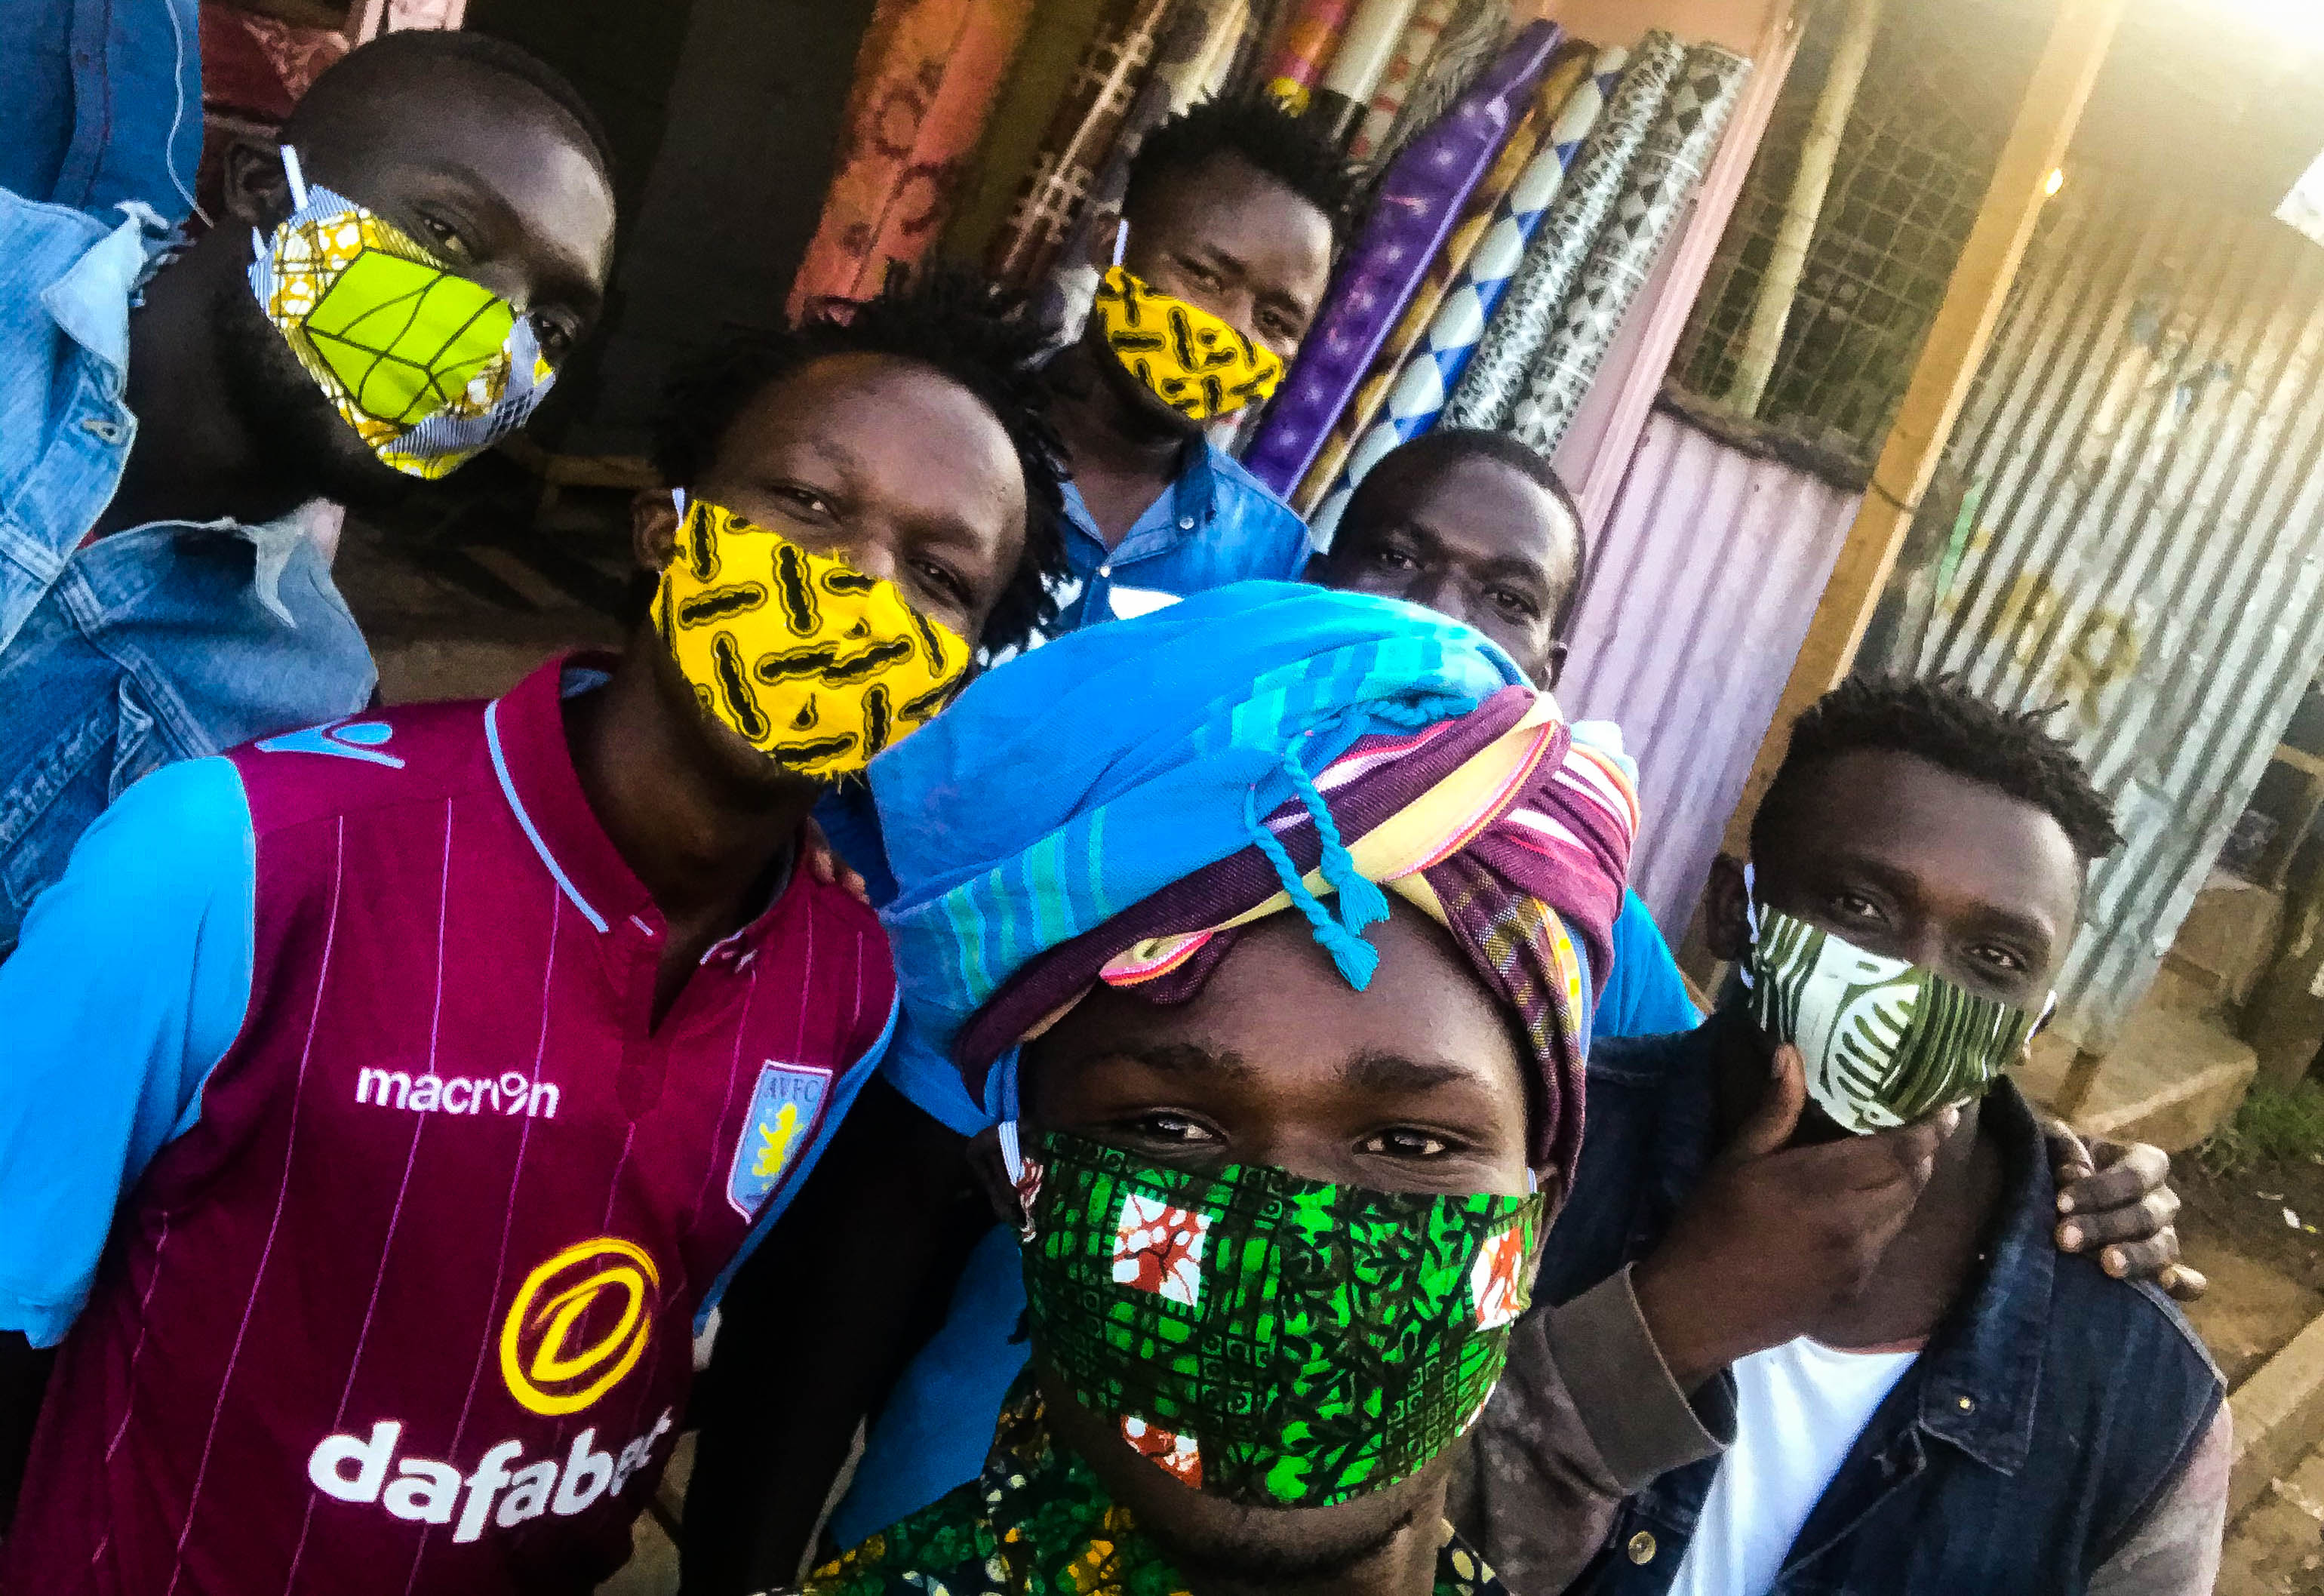 Coronavirus In Kenya Local Fashion Designer Hands Out Masks To Protect Vulnerable Communities Cgtn Africa